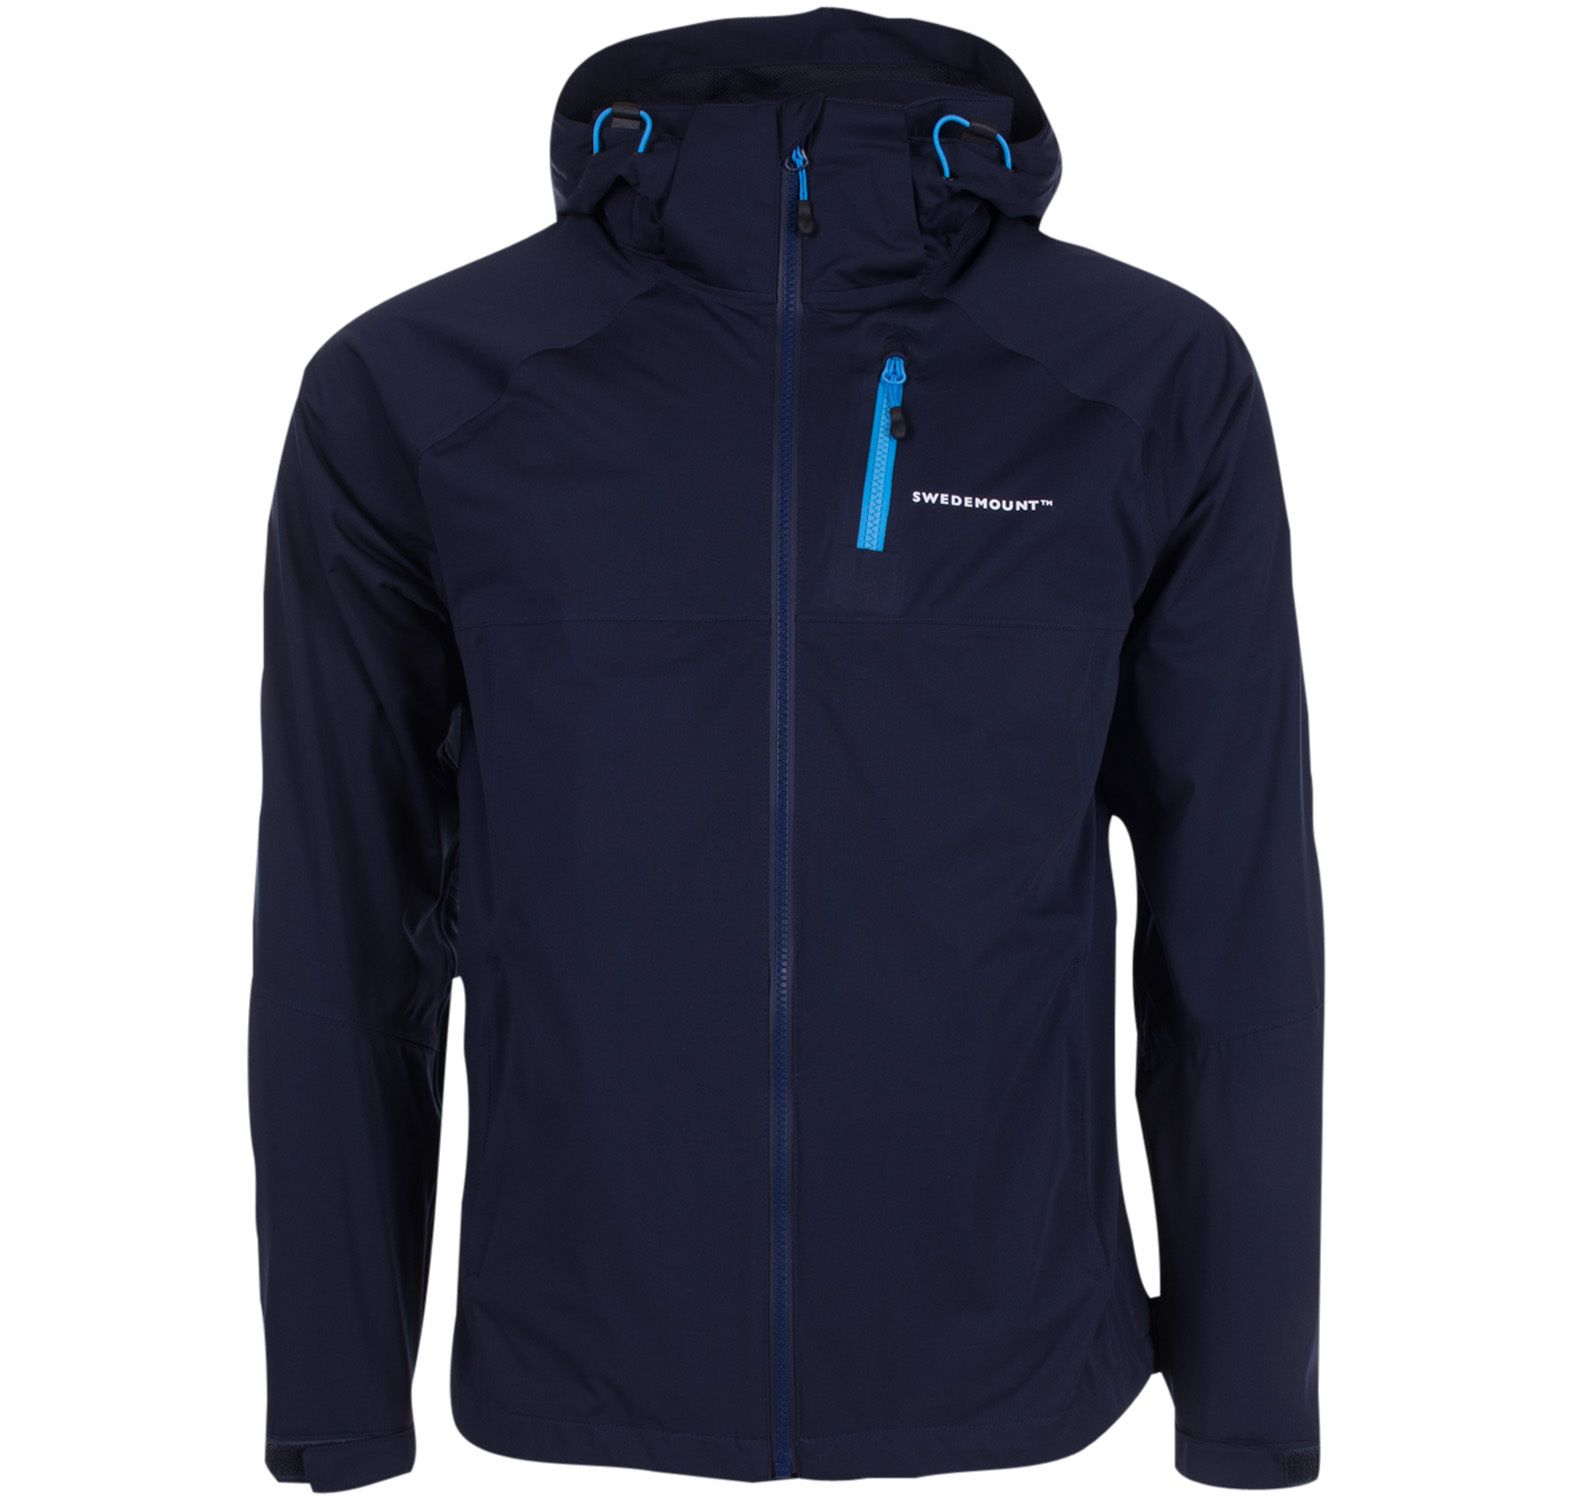 On Course Jacket, DK NAVY/BLUE, S